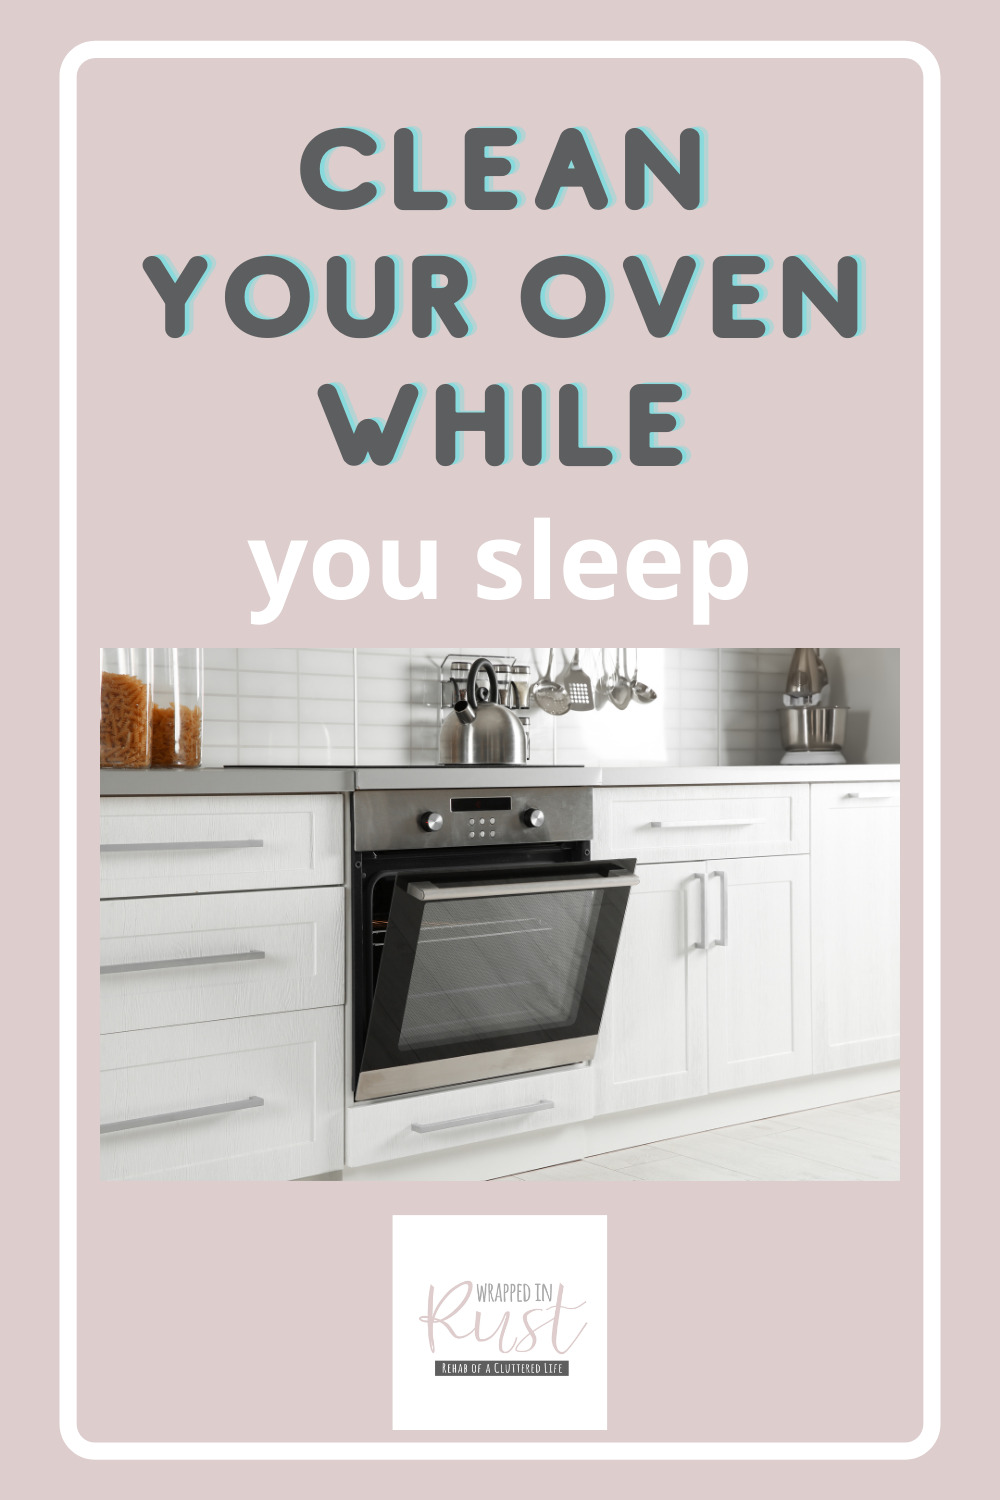 Clean Your Oven While You Sleep